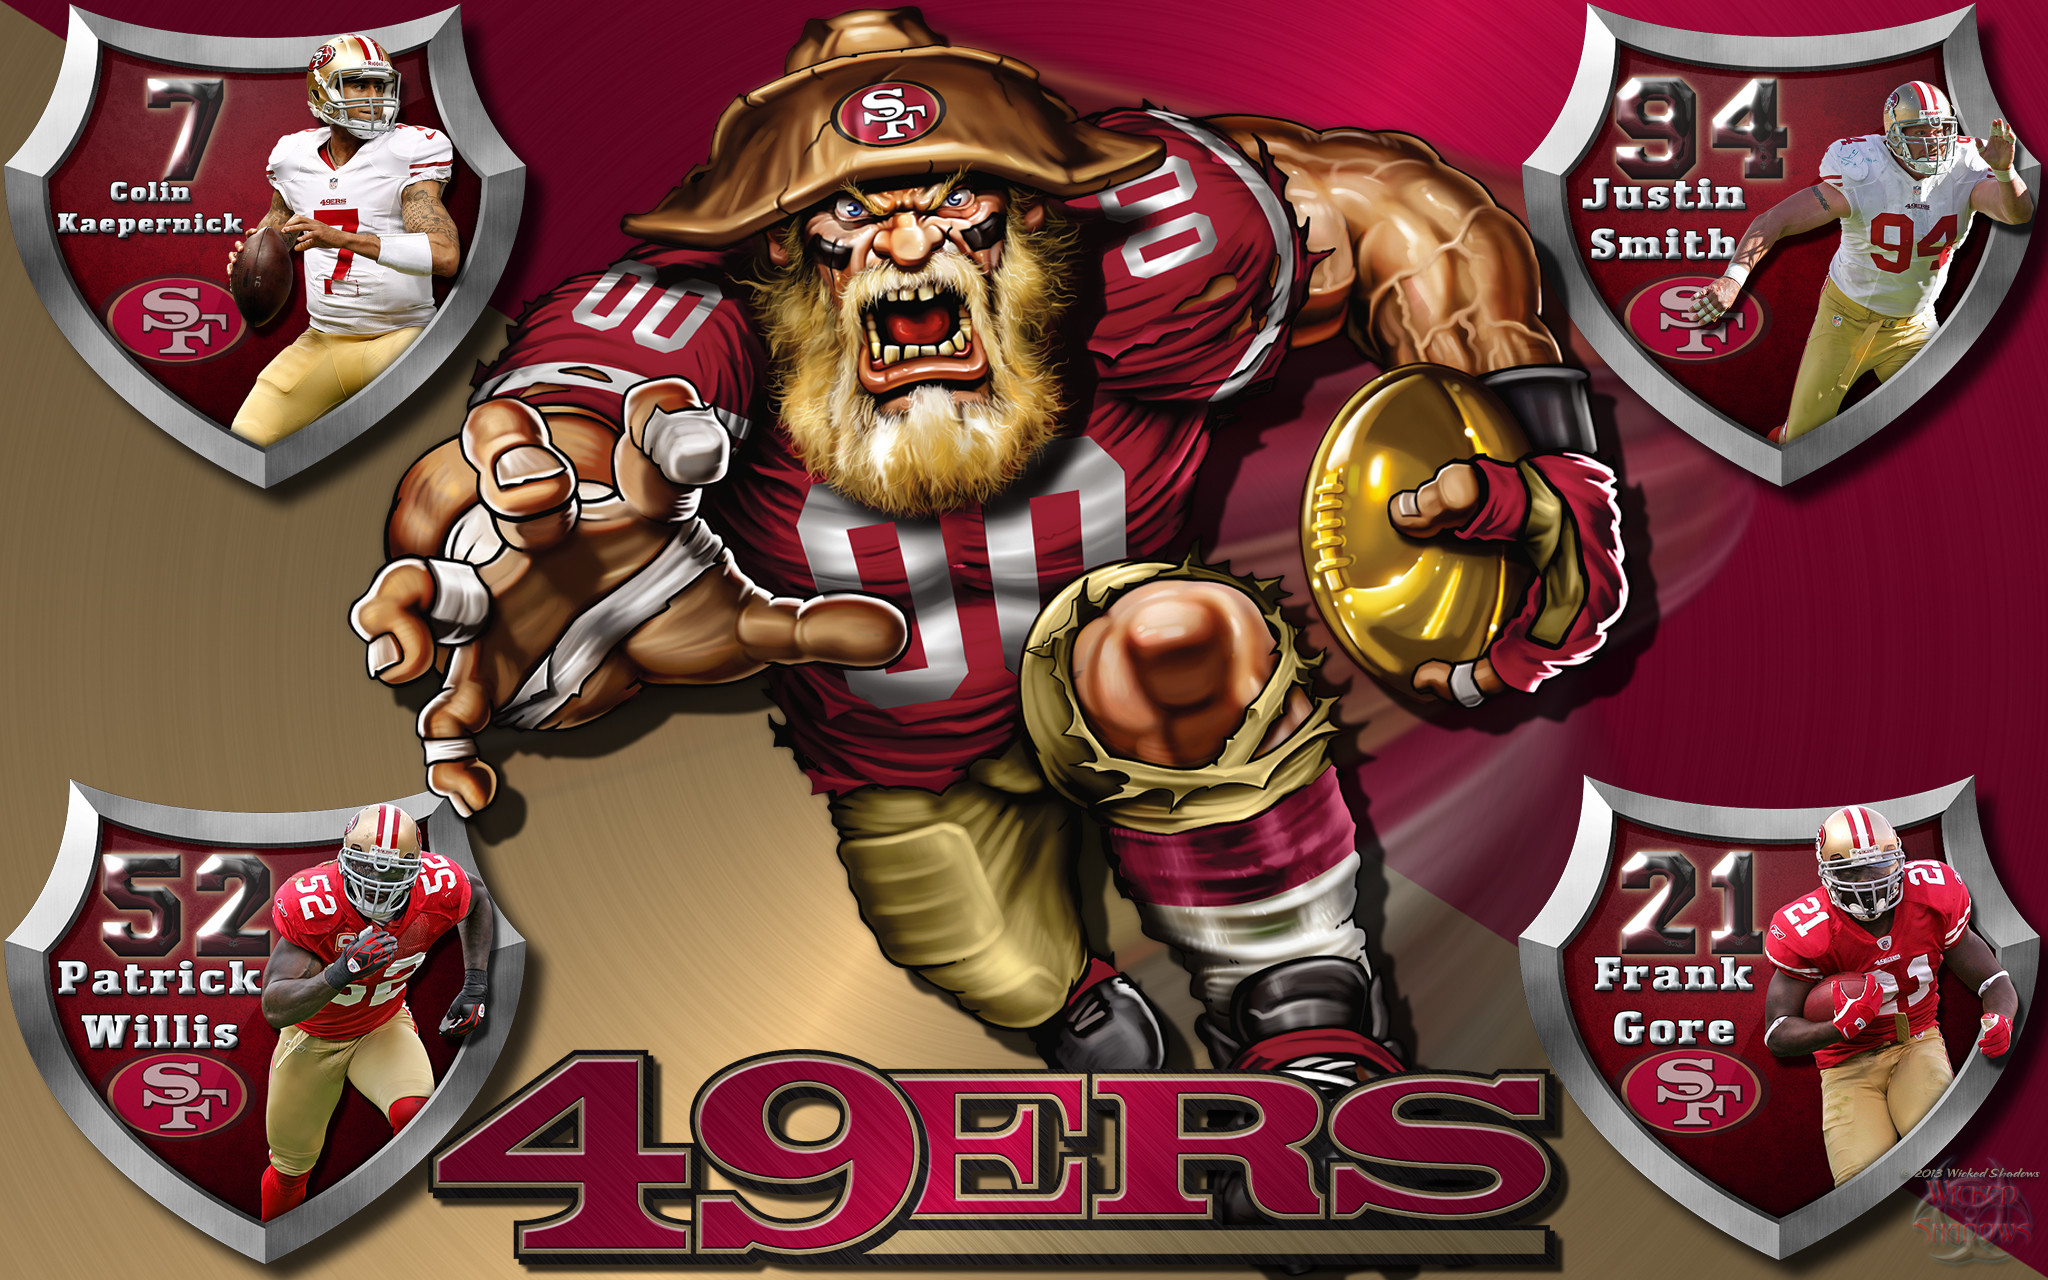 2048x1280 Wallpapers By Wicked Shadows: 49ers Crazy Logo Shield Players .